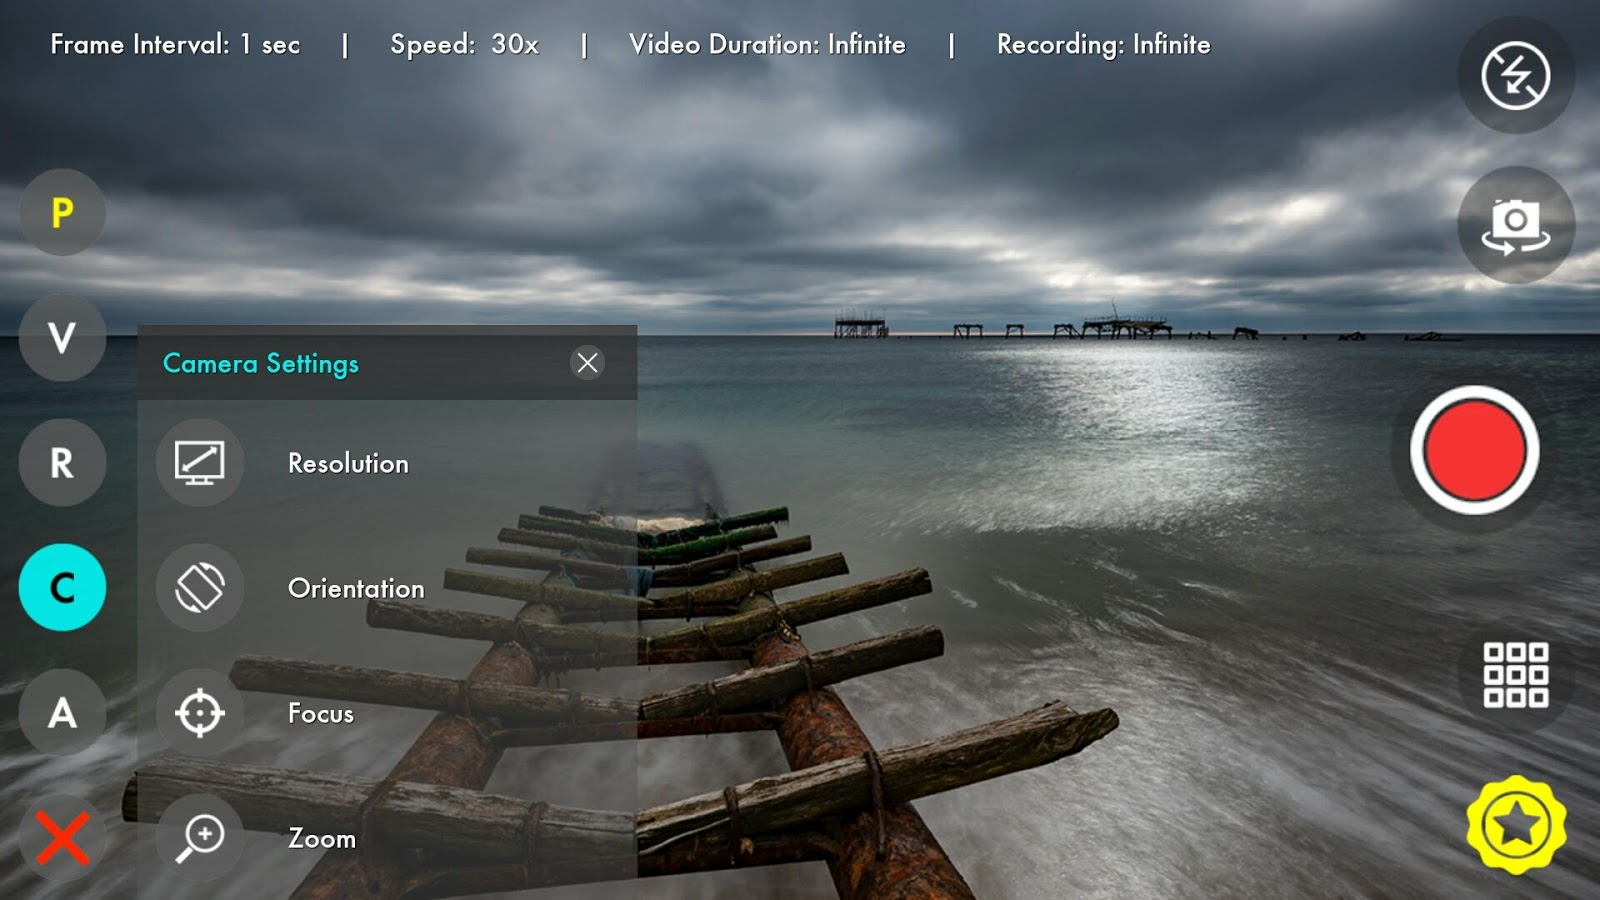 Time Lapse Video Recorder Pro 1 4 APK Download - Android cats